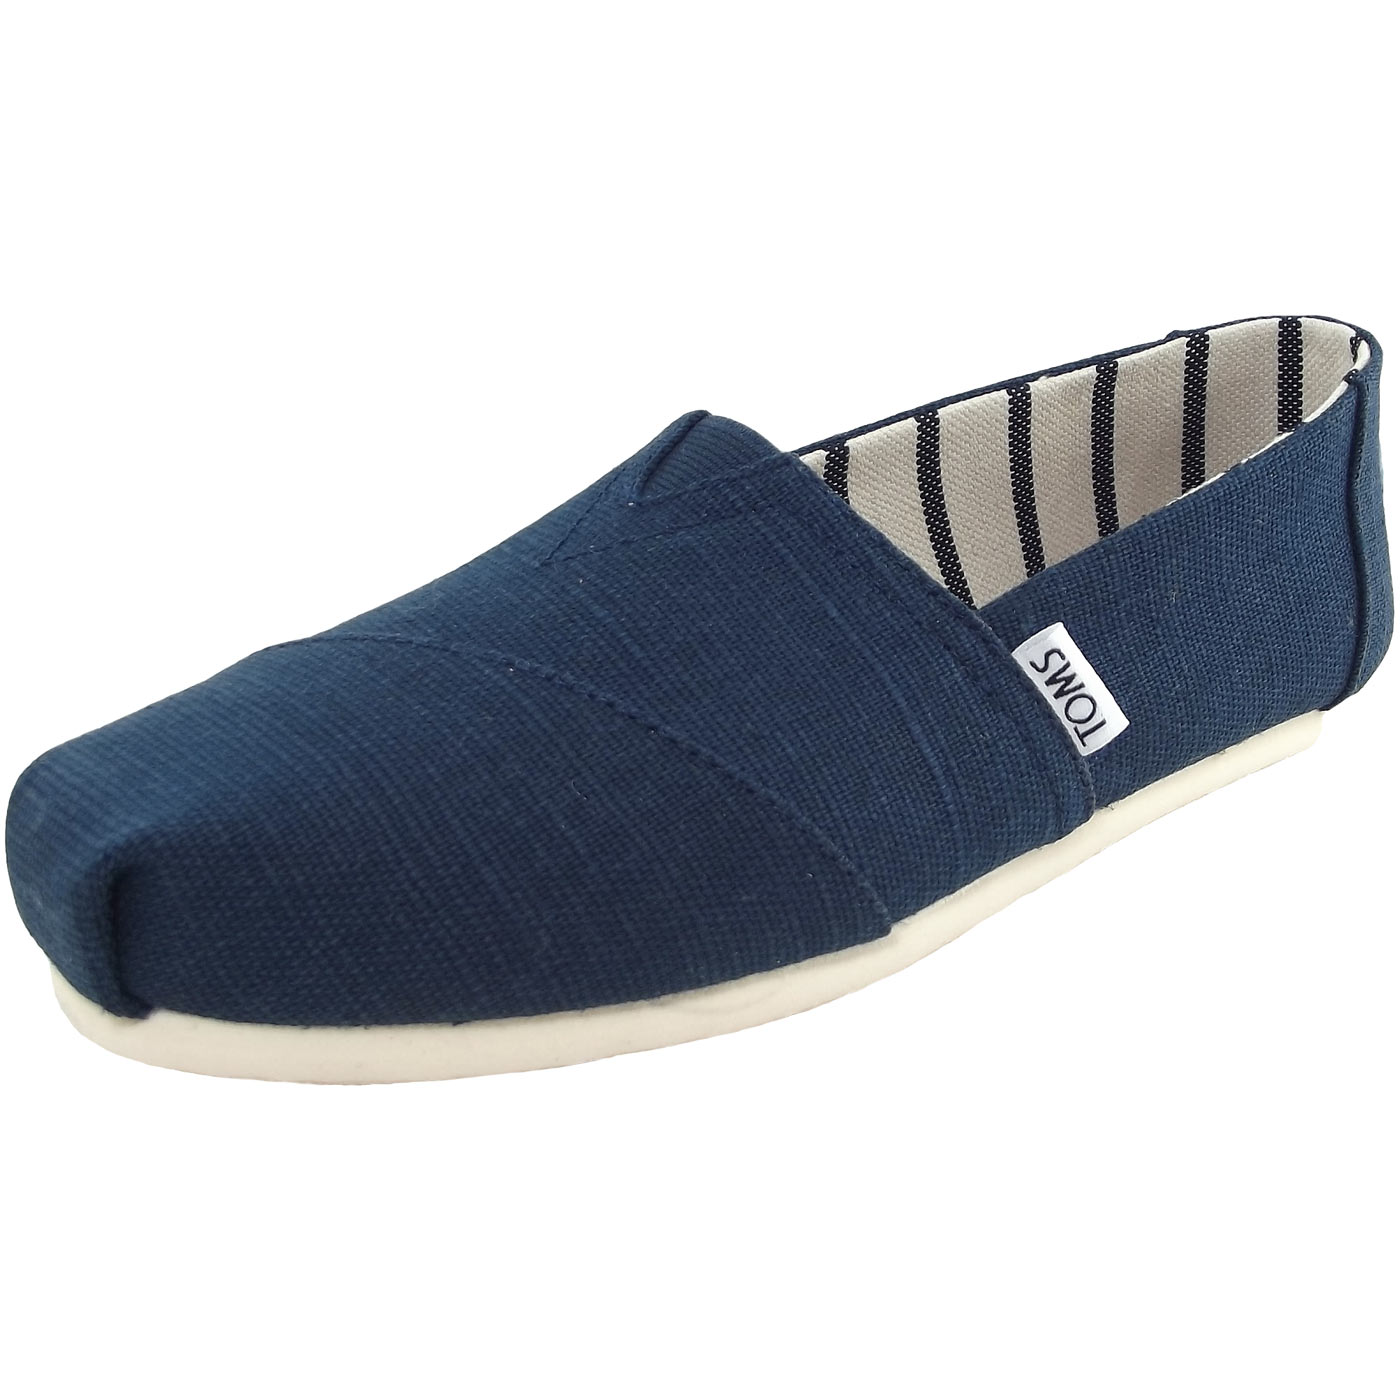 deebde6a64e Toms Classic Heritage Canvas Wm majolica blue - Shoes   Accessories ...